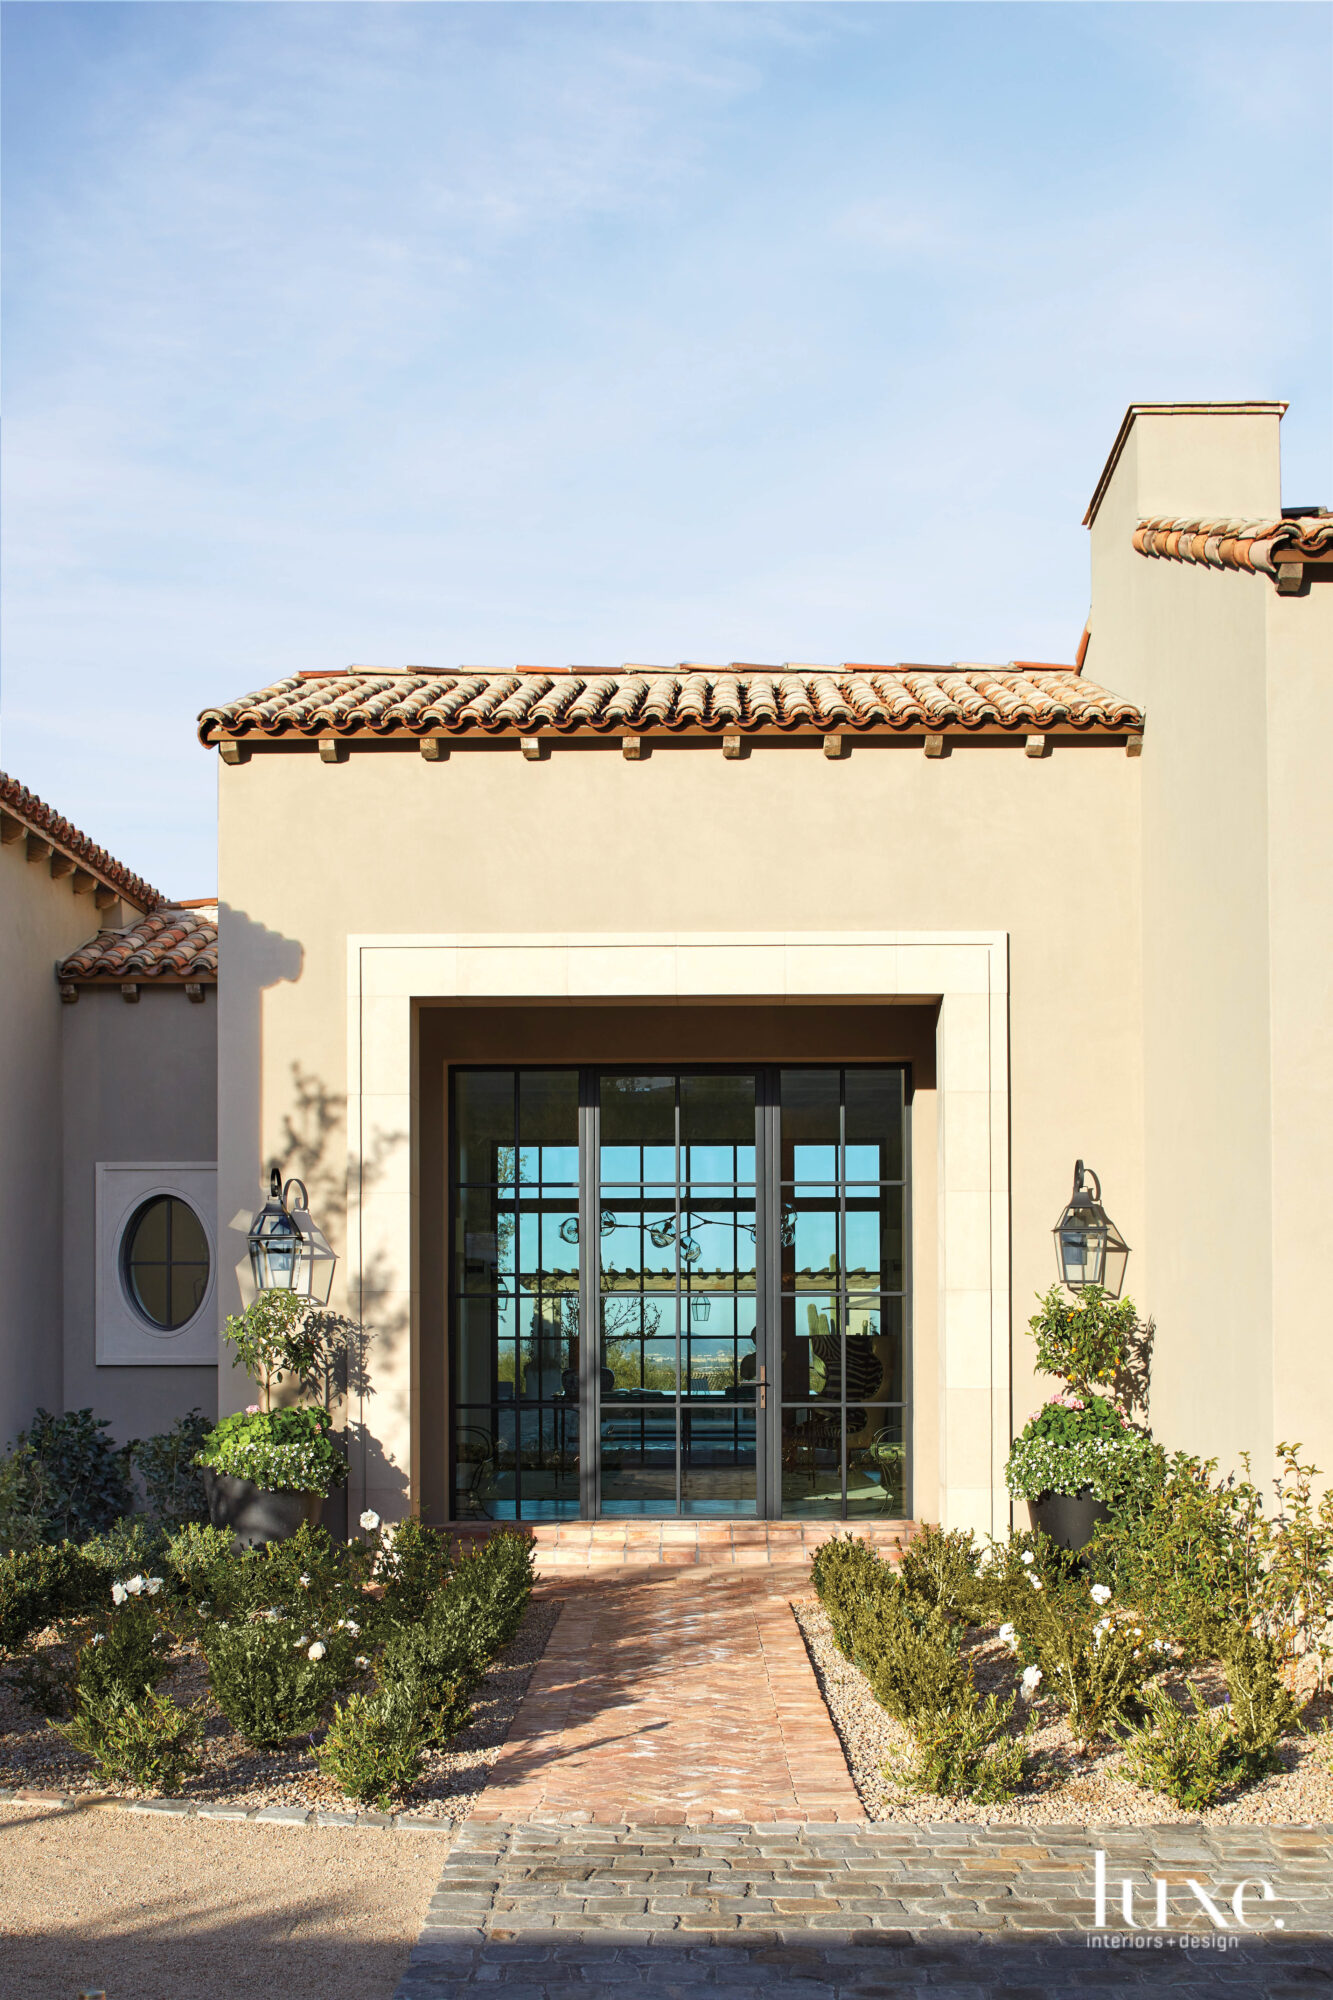 Landscaping frames the entrance to...